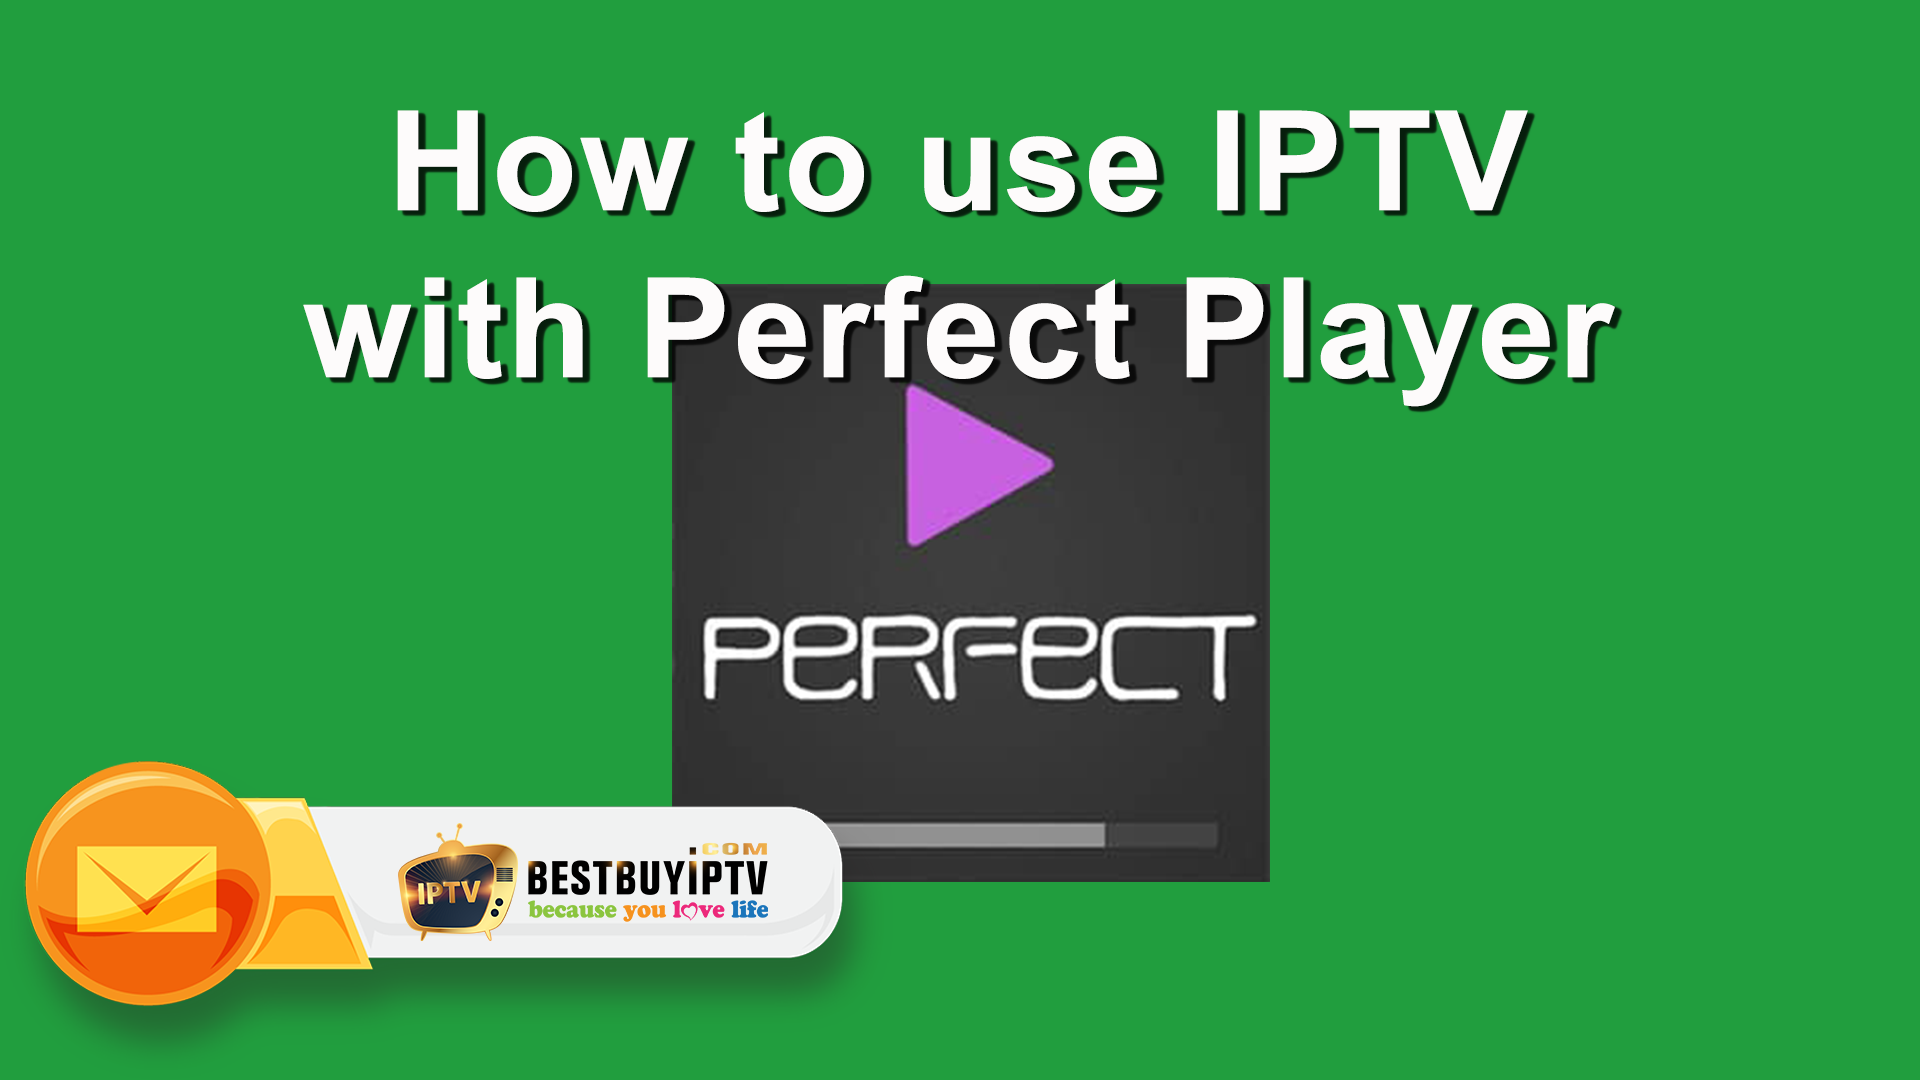 how-to-use-iptv-in-perfect-player-mp4